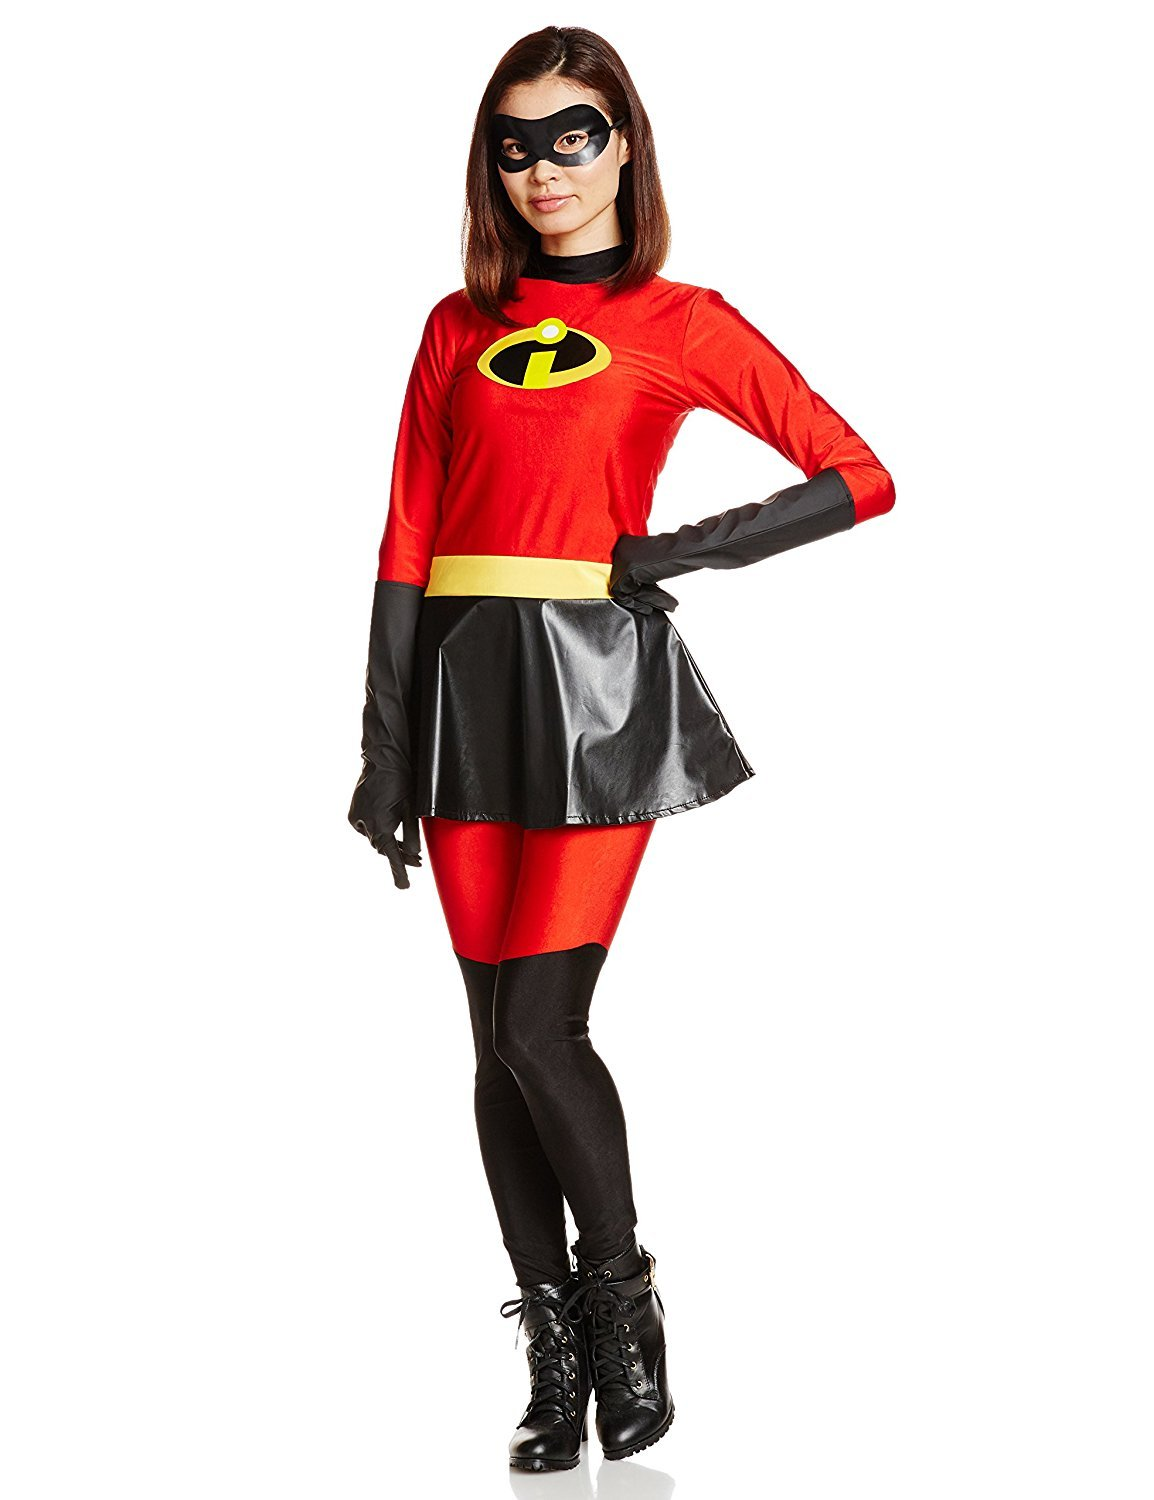 - 61Lk0bCotzL - Disney Mrs. Incredible Costume – Teen/Women STD Size